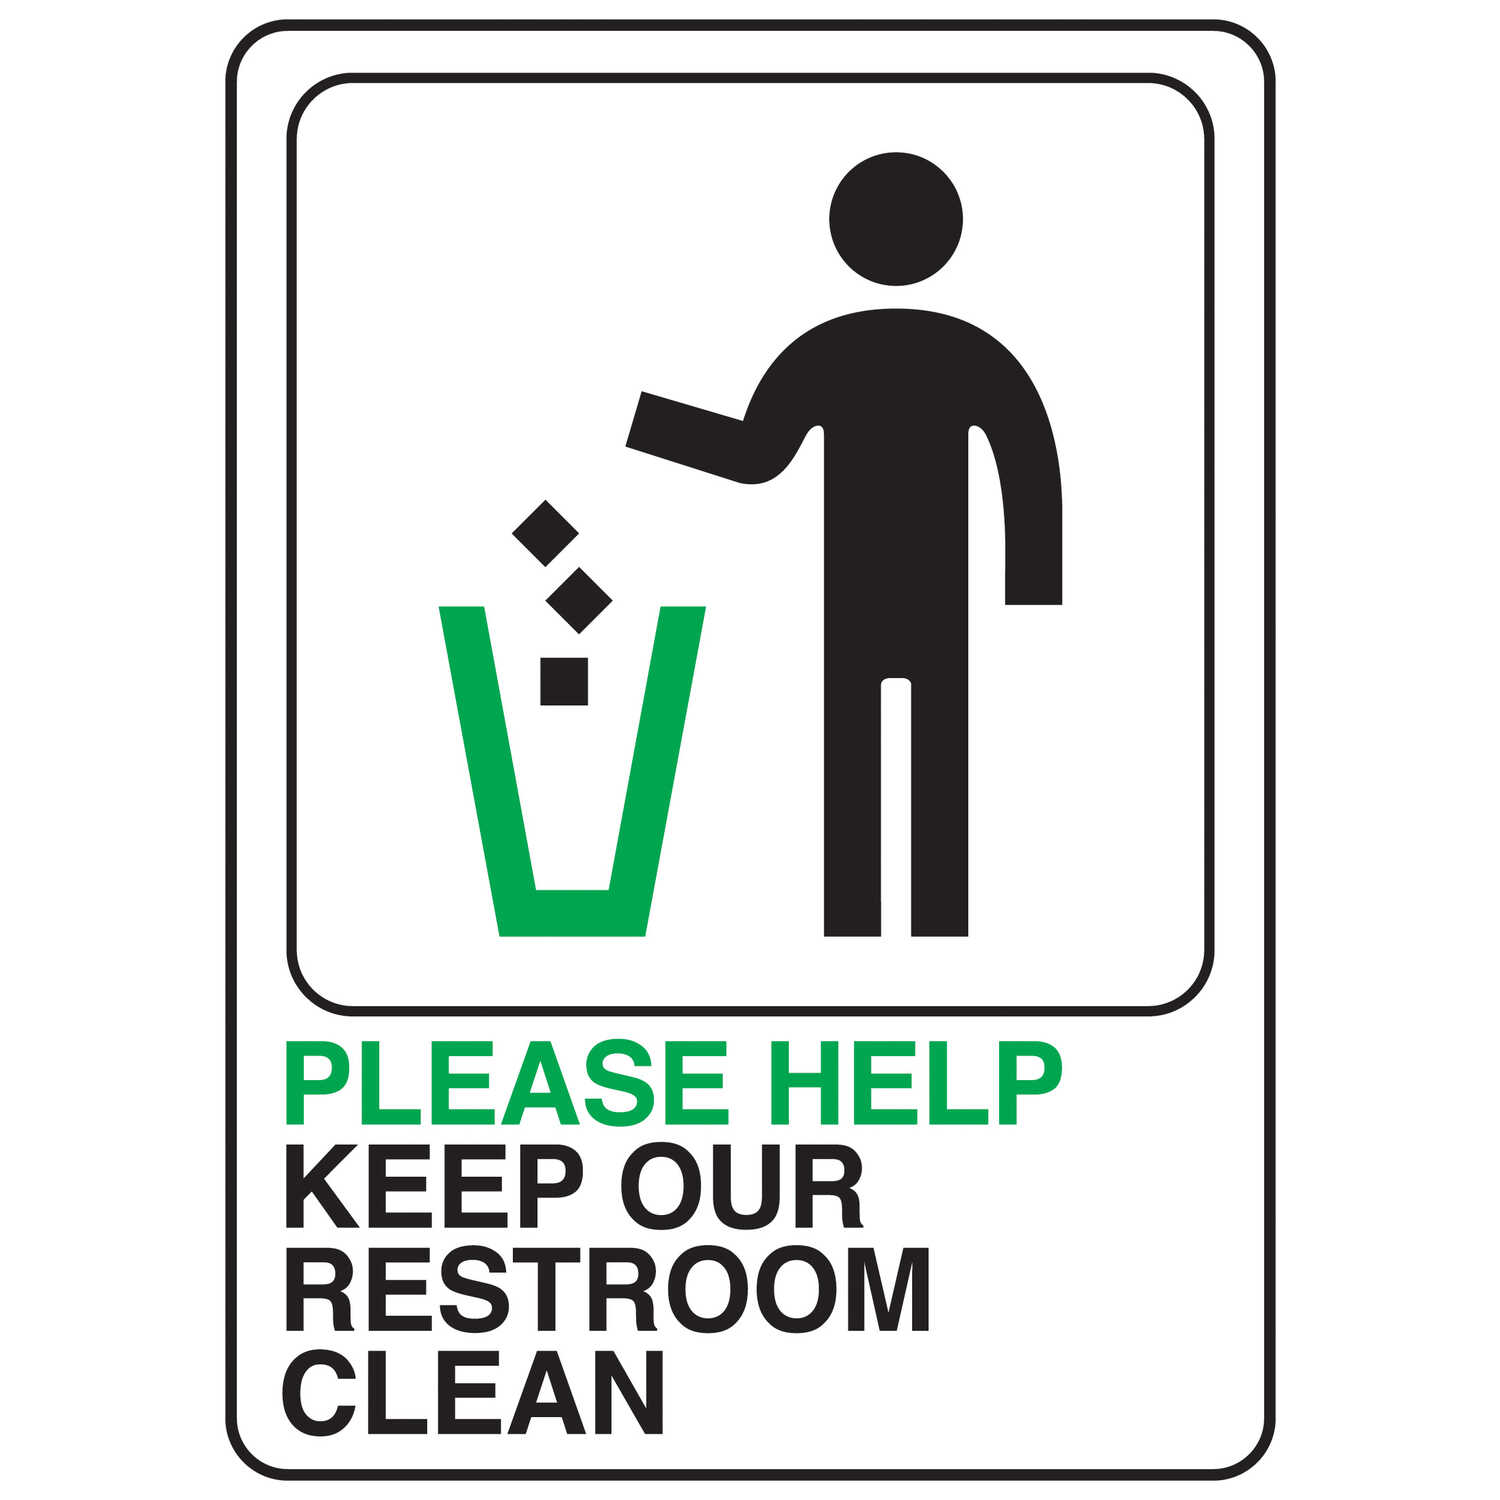 HY-KO  English  Please help keep our restroom area clean  Sign  Plastic  7 in. H x 5 in. W